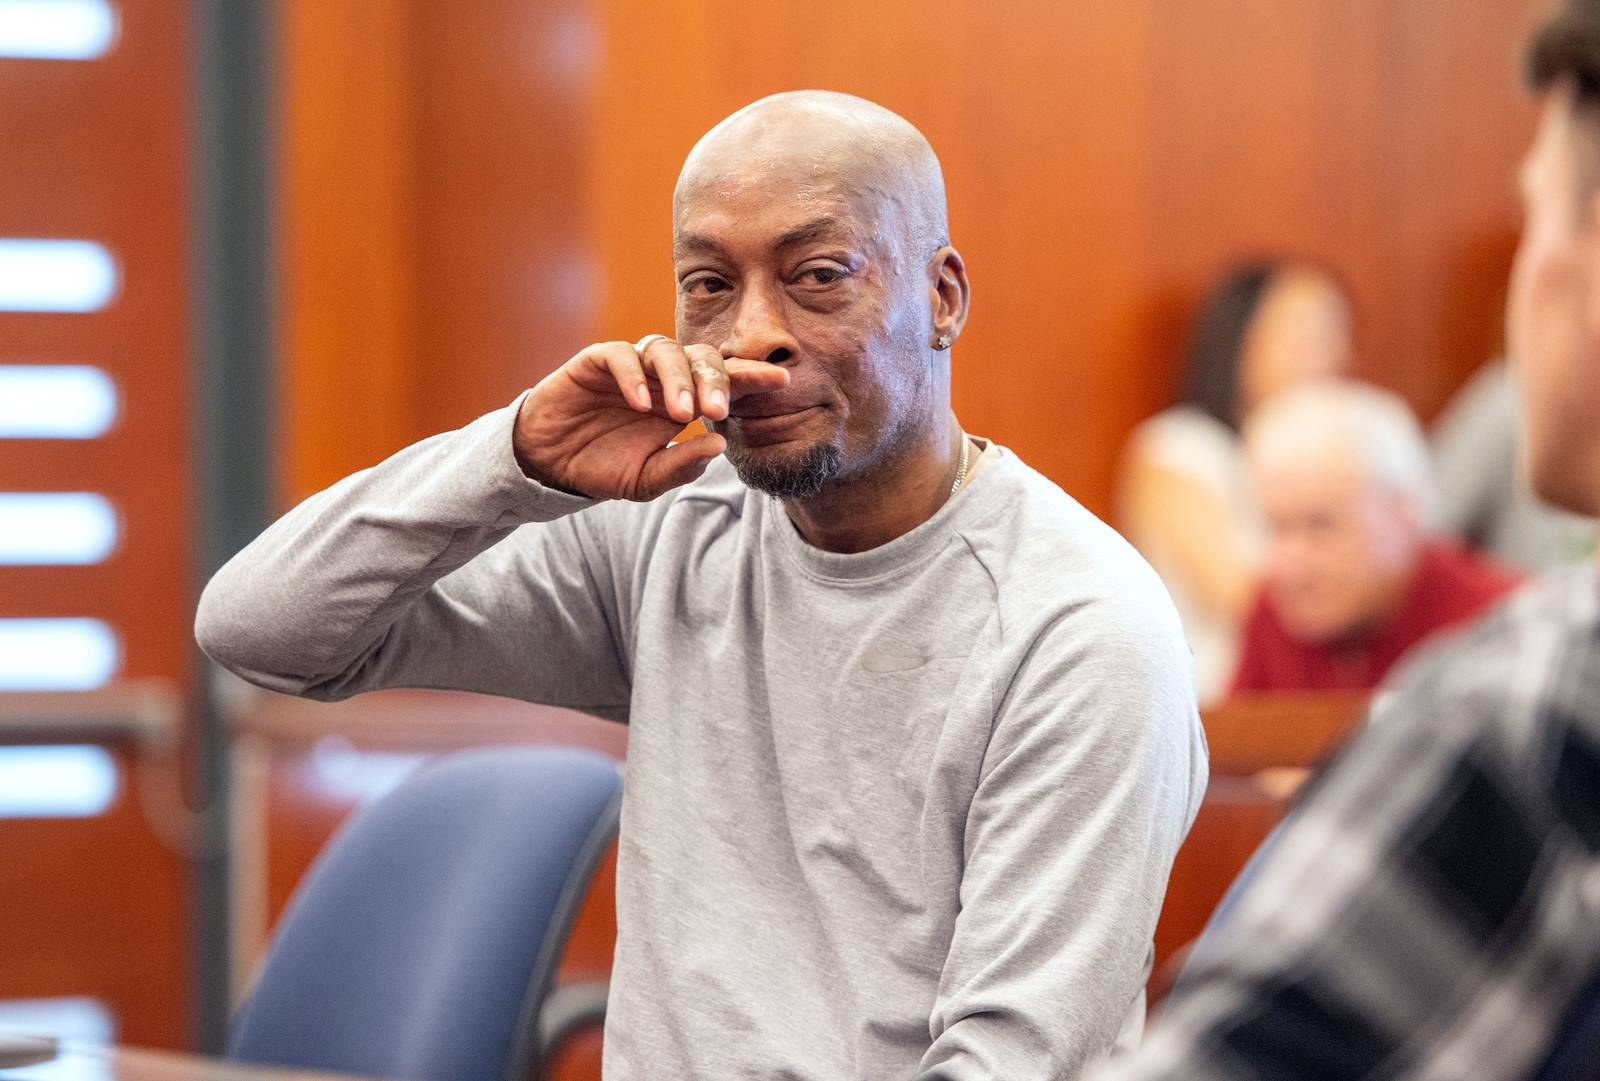 Dewayne Johnson reacts after the verdict was read in the case against Monsanto at the Superior Court Of California in San Francisco, California on August 10, 2018. Josh Edelson—AFP/Getty Images